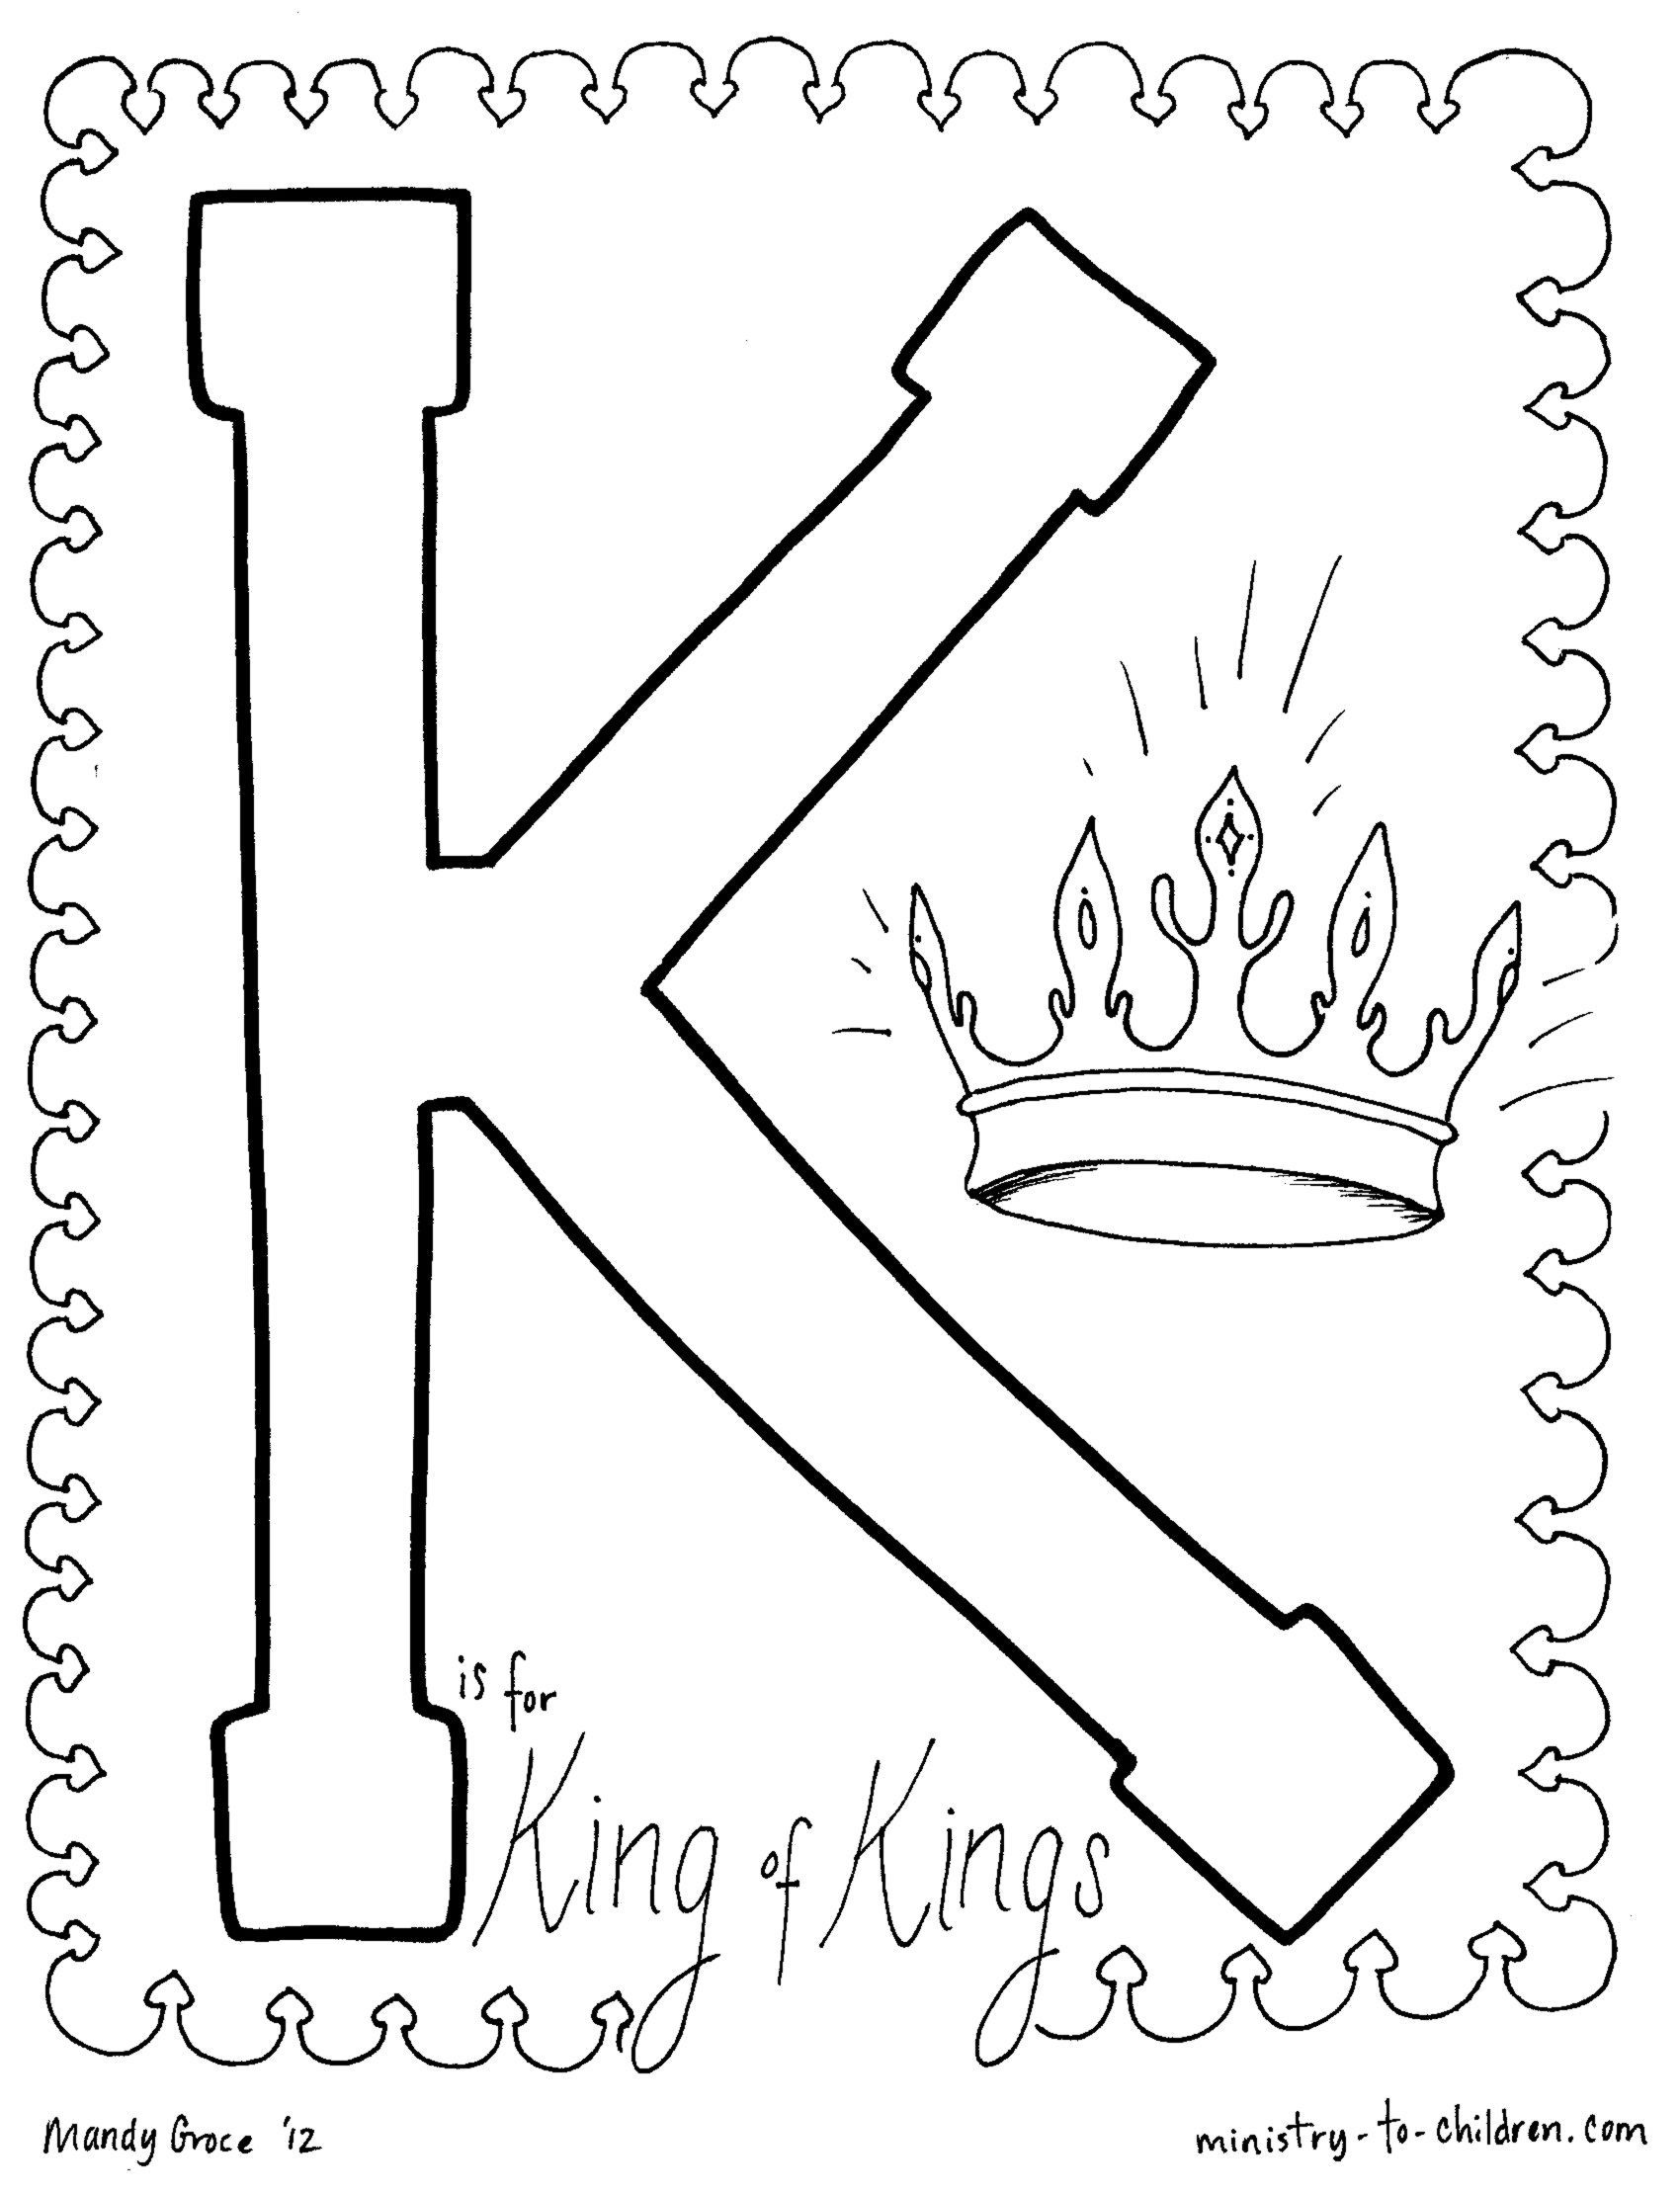 K Is For King Of Kings Coloring Page With Images Letter K Crafts